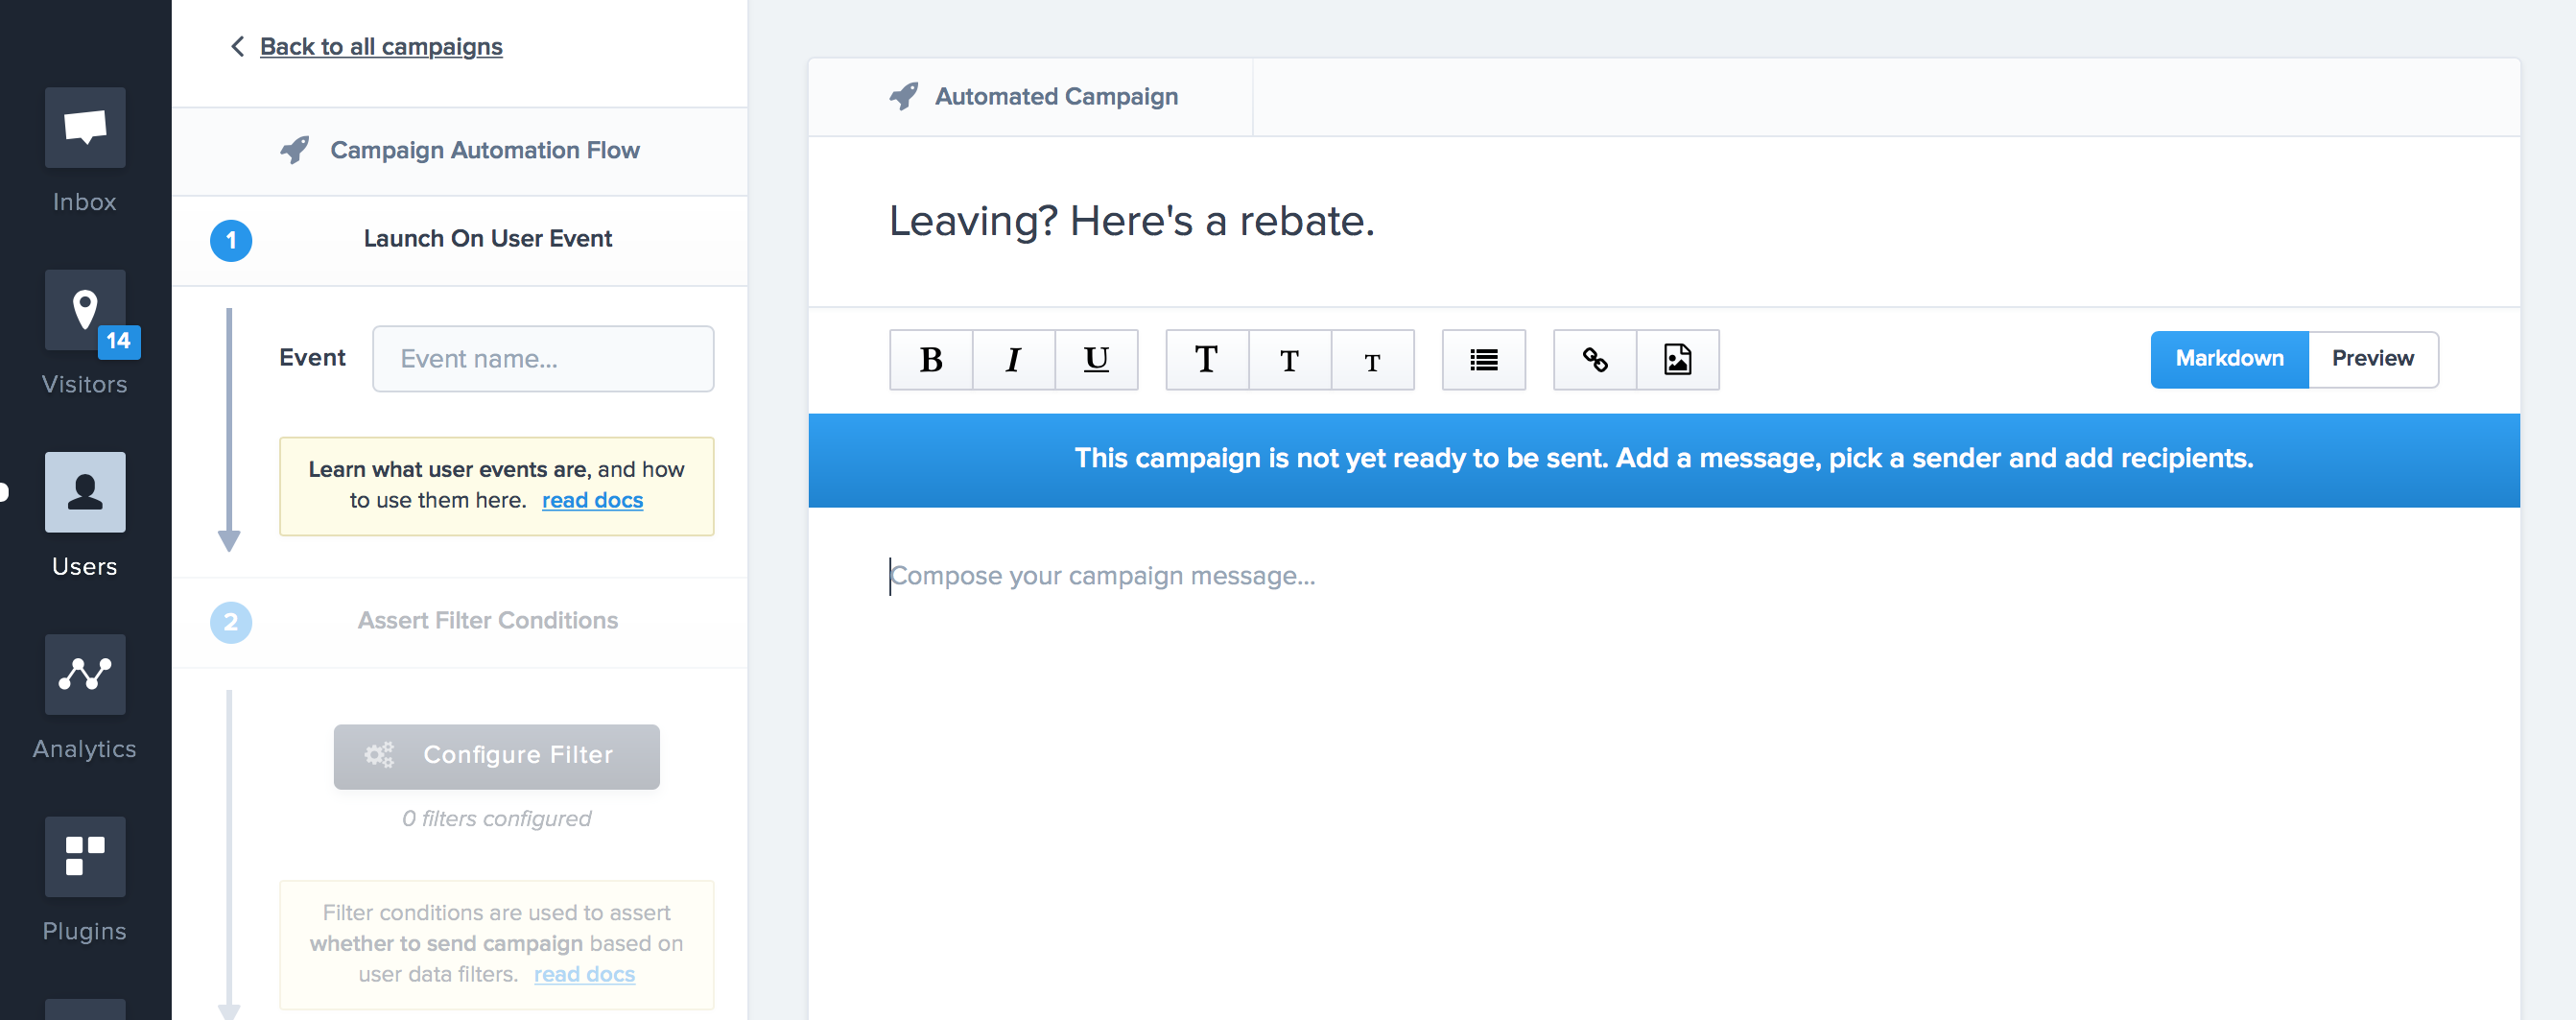 Configure your Automated Campaign